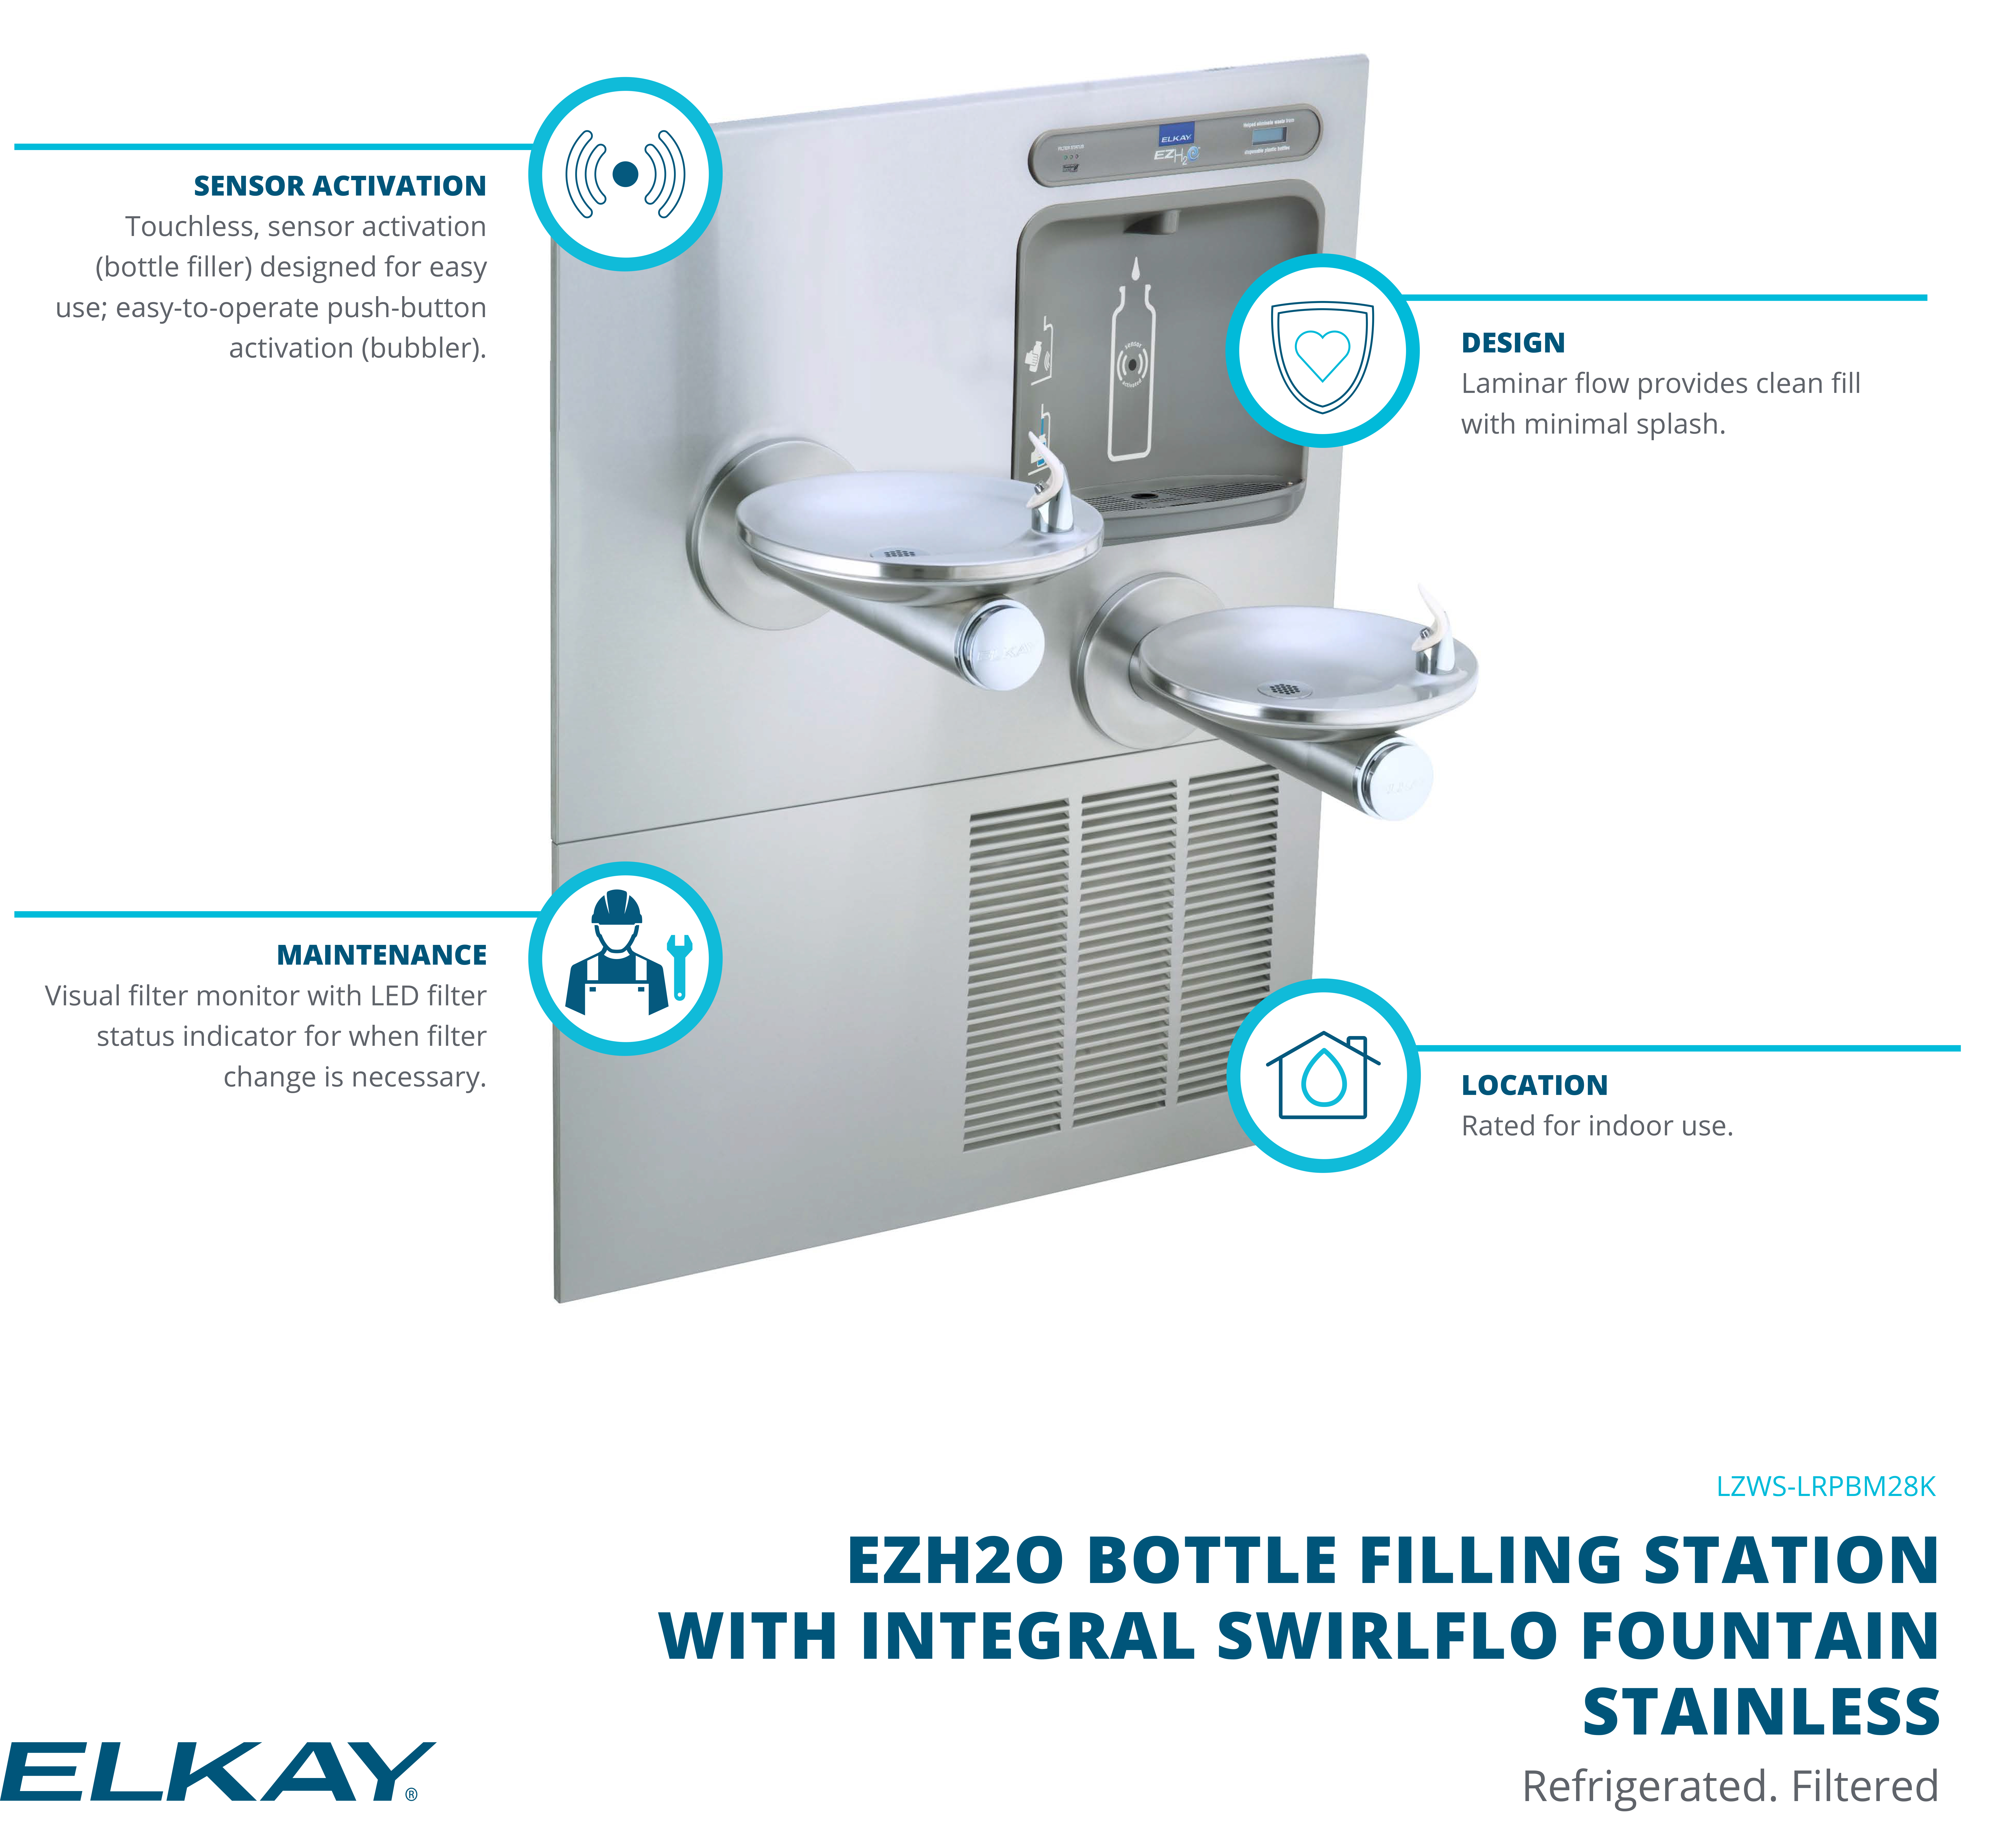 Elkay SwirlFlo Bi-level Fountain with Integral EZH2O Bottle Filling Station Main Product Features